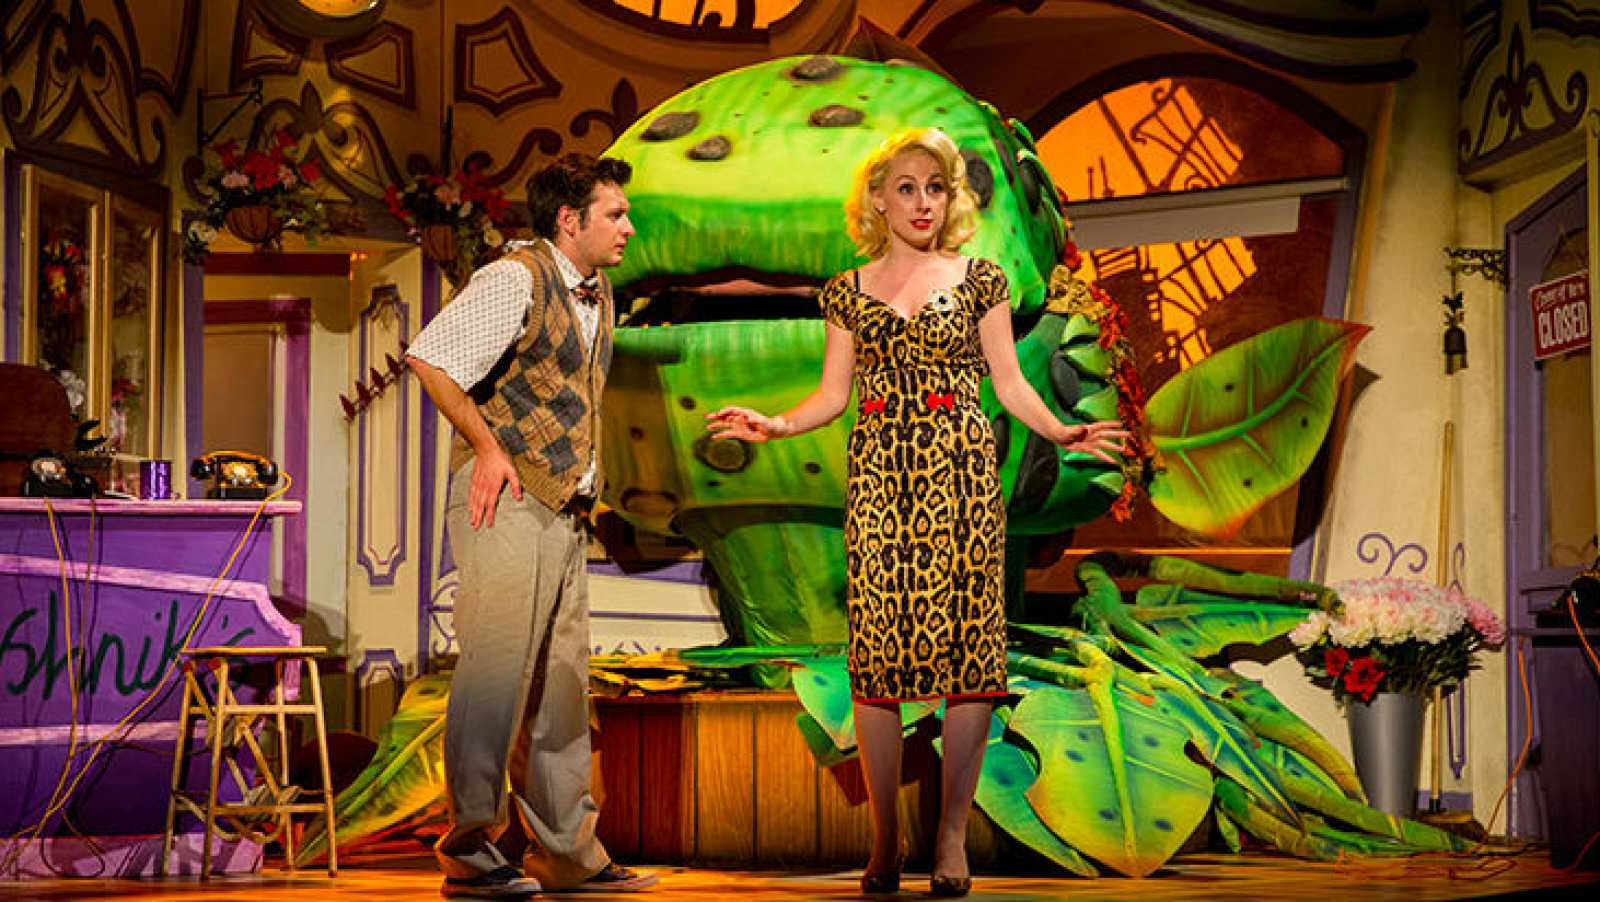 El musical -  Little Shop of horrors UK 2016 tour - 17/09/16 - Escuchar ahora